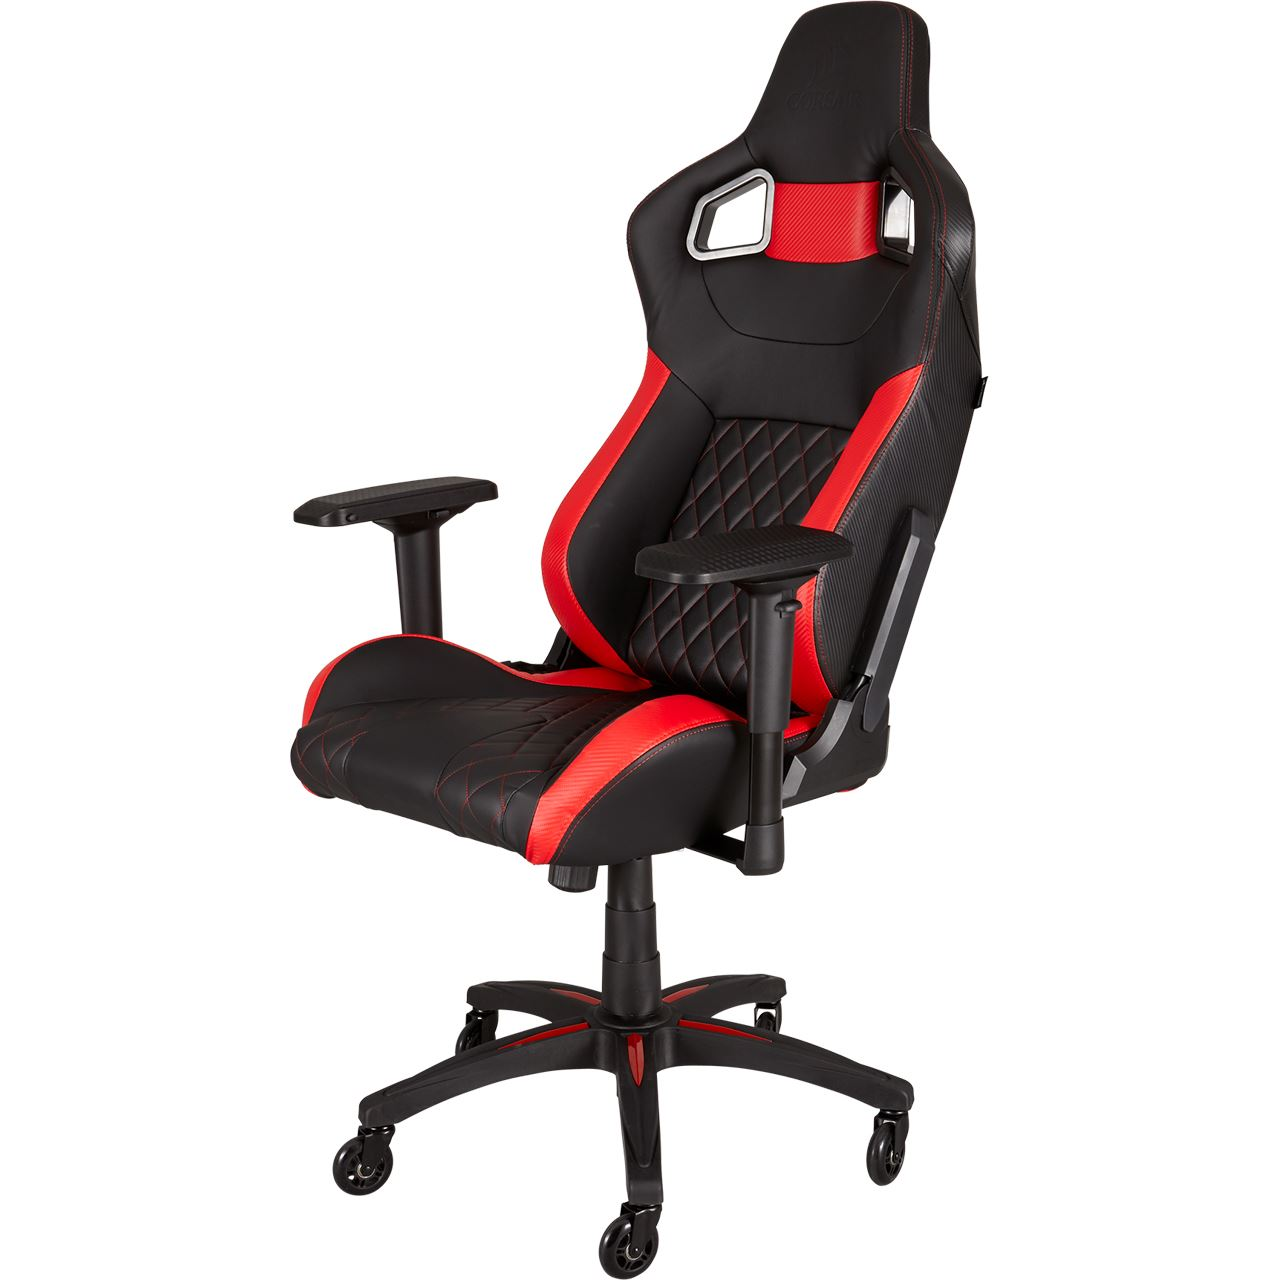 Gamer Sessel Amazon Gamer Sessel Media Markt